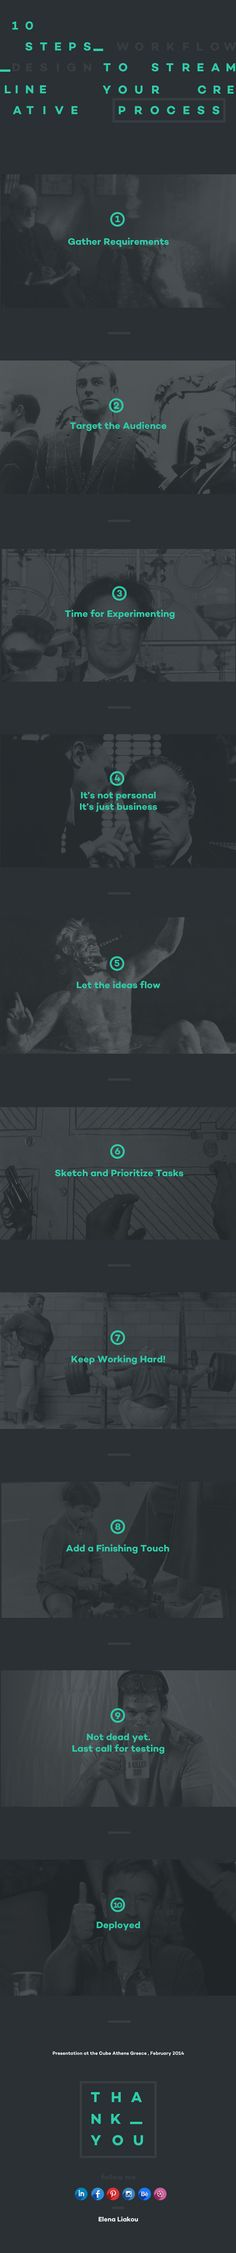 10 STEPS TO STREAMLINE YOUR CREATIVE PROCESS by Elena Liakou, via Behance